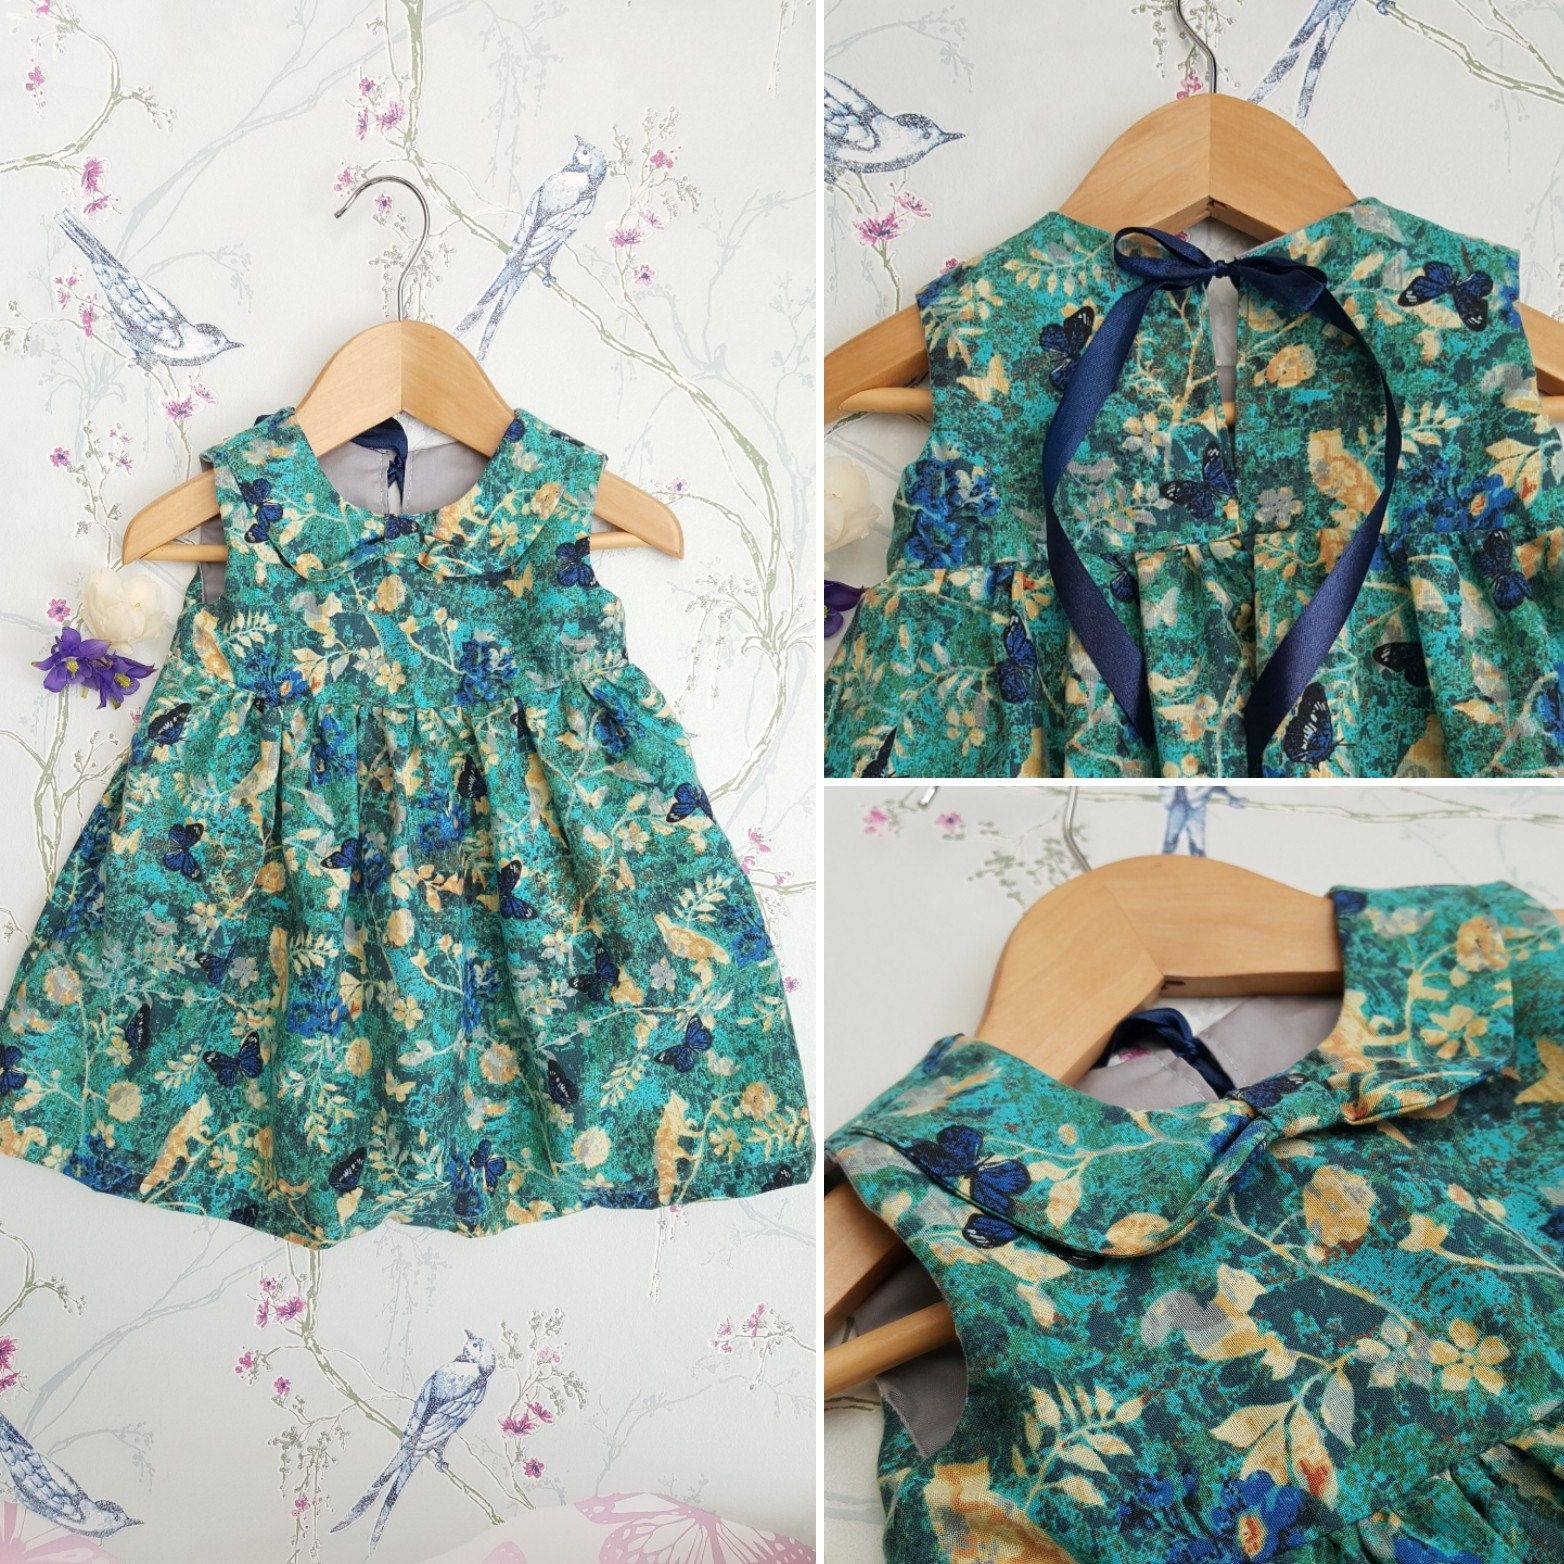 9-12m, 12-18m, Baby Girls Dress, Baby Dress, Toddler Dress, Party ...